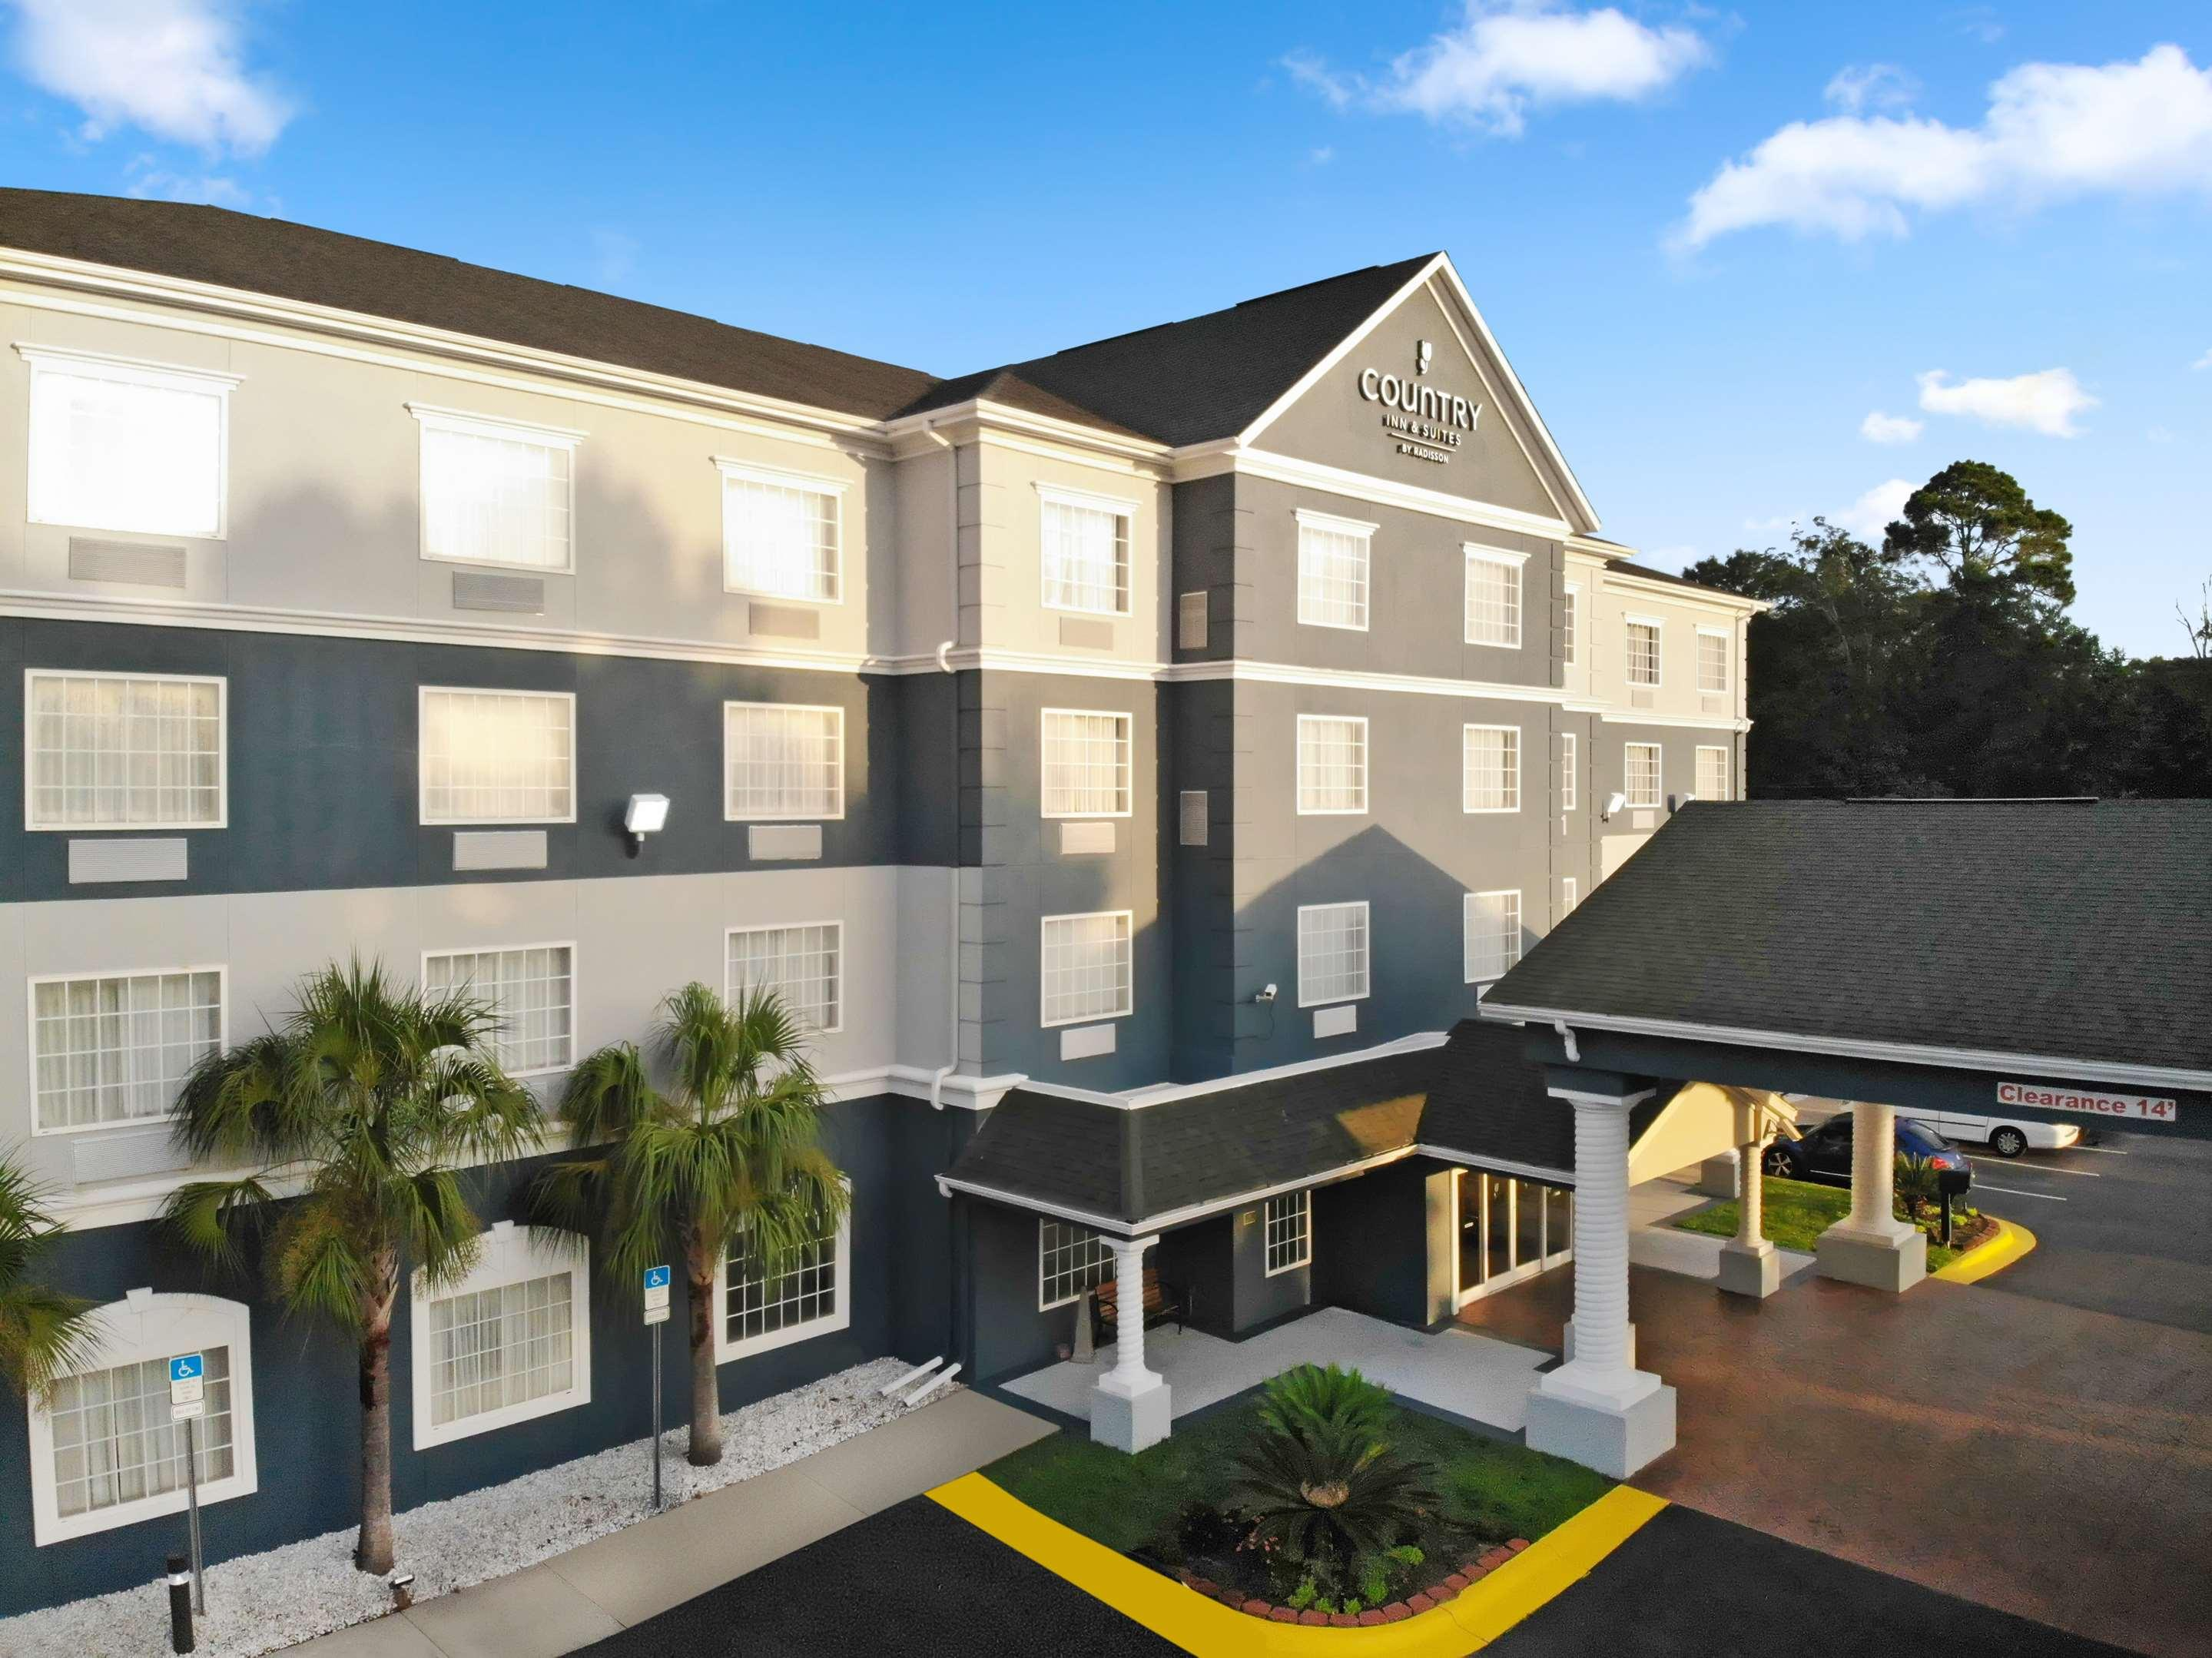 Country Inn & Suites by Radisson, Pensacola, W. FL